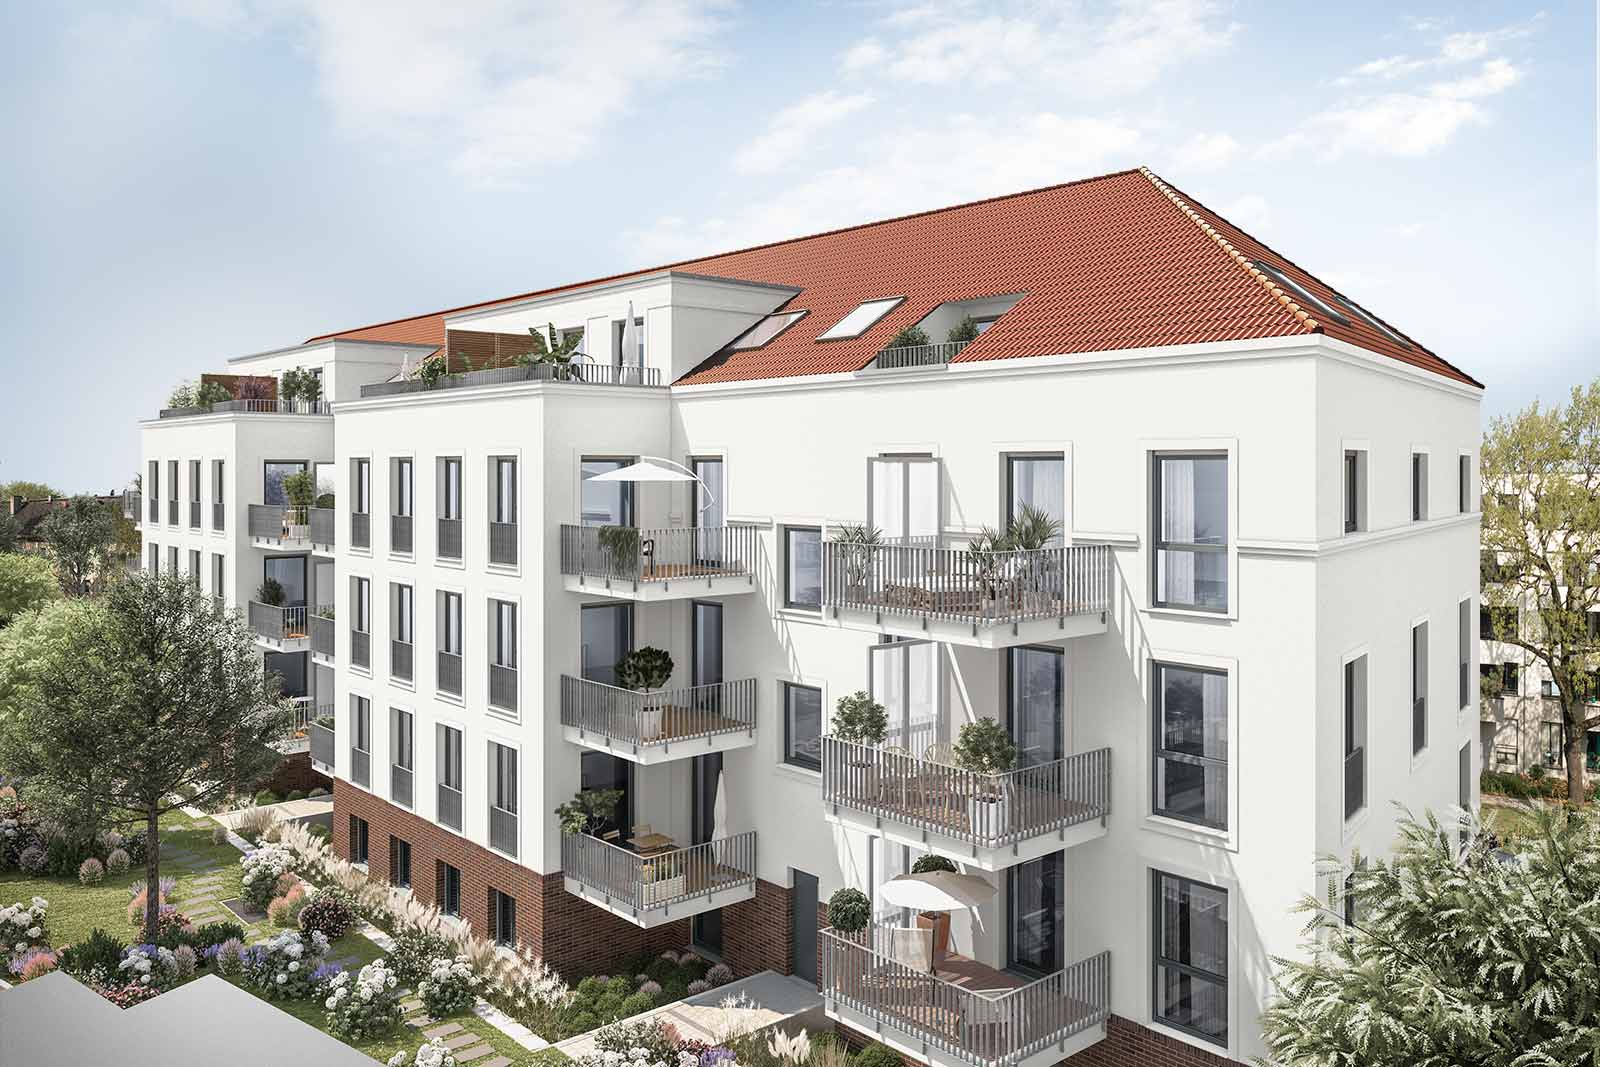 Attractive new-build with KfW-55 freehold apartments in Berlin Karlshorst